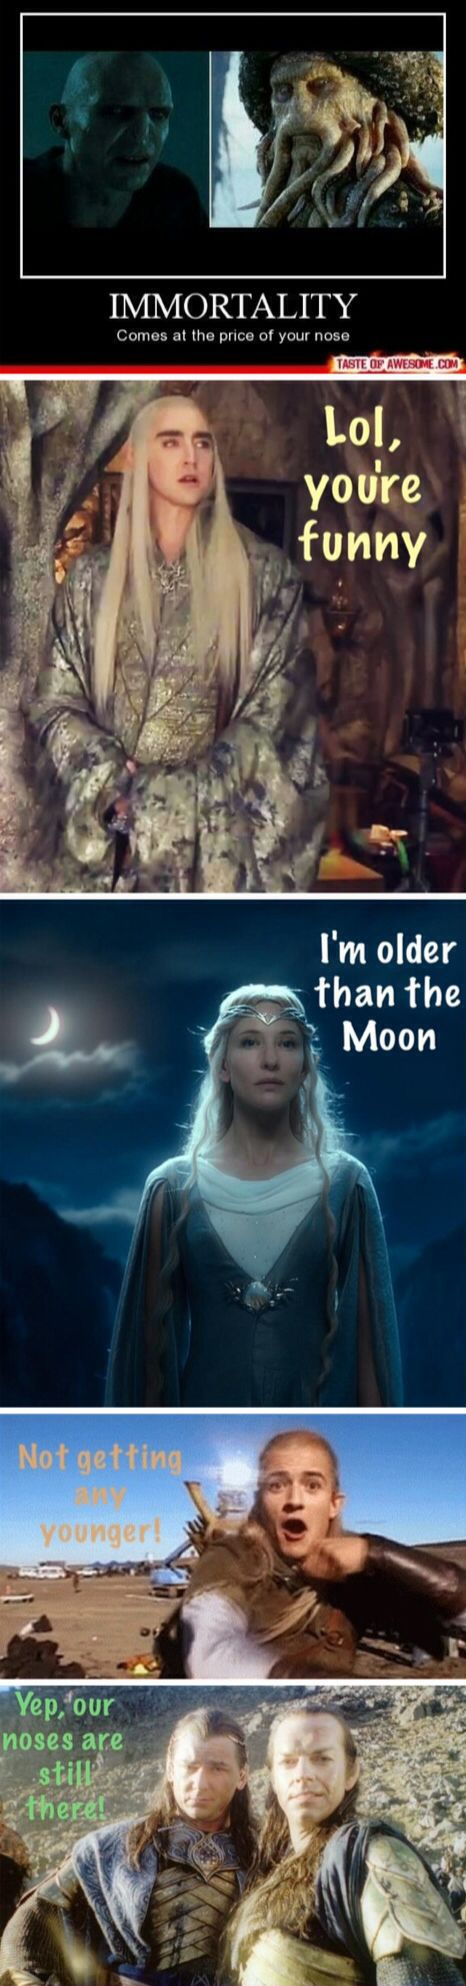 / Lord of the Rings / The Hobbit / Elves / Tolkien / Humor / Galadriel / Thranduil / Legolas / Gil-galad / Elrond